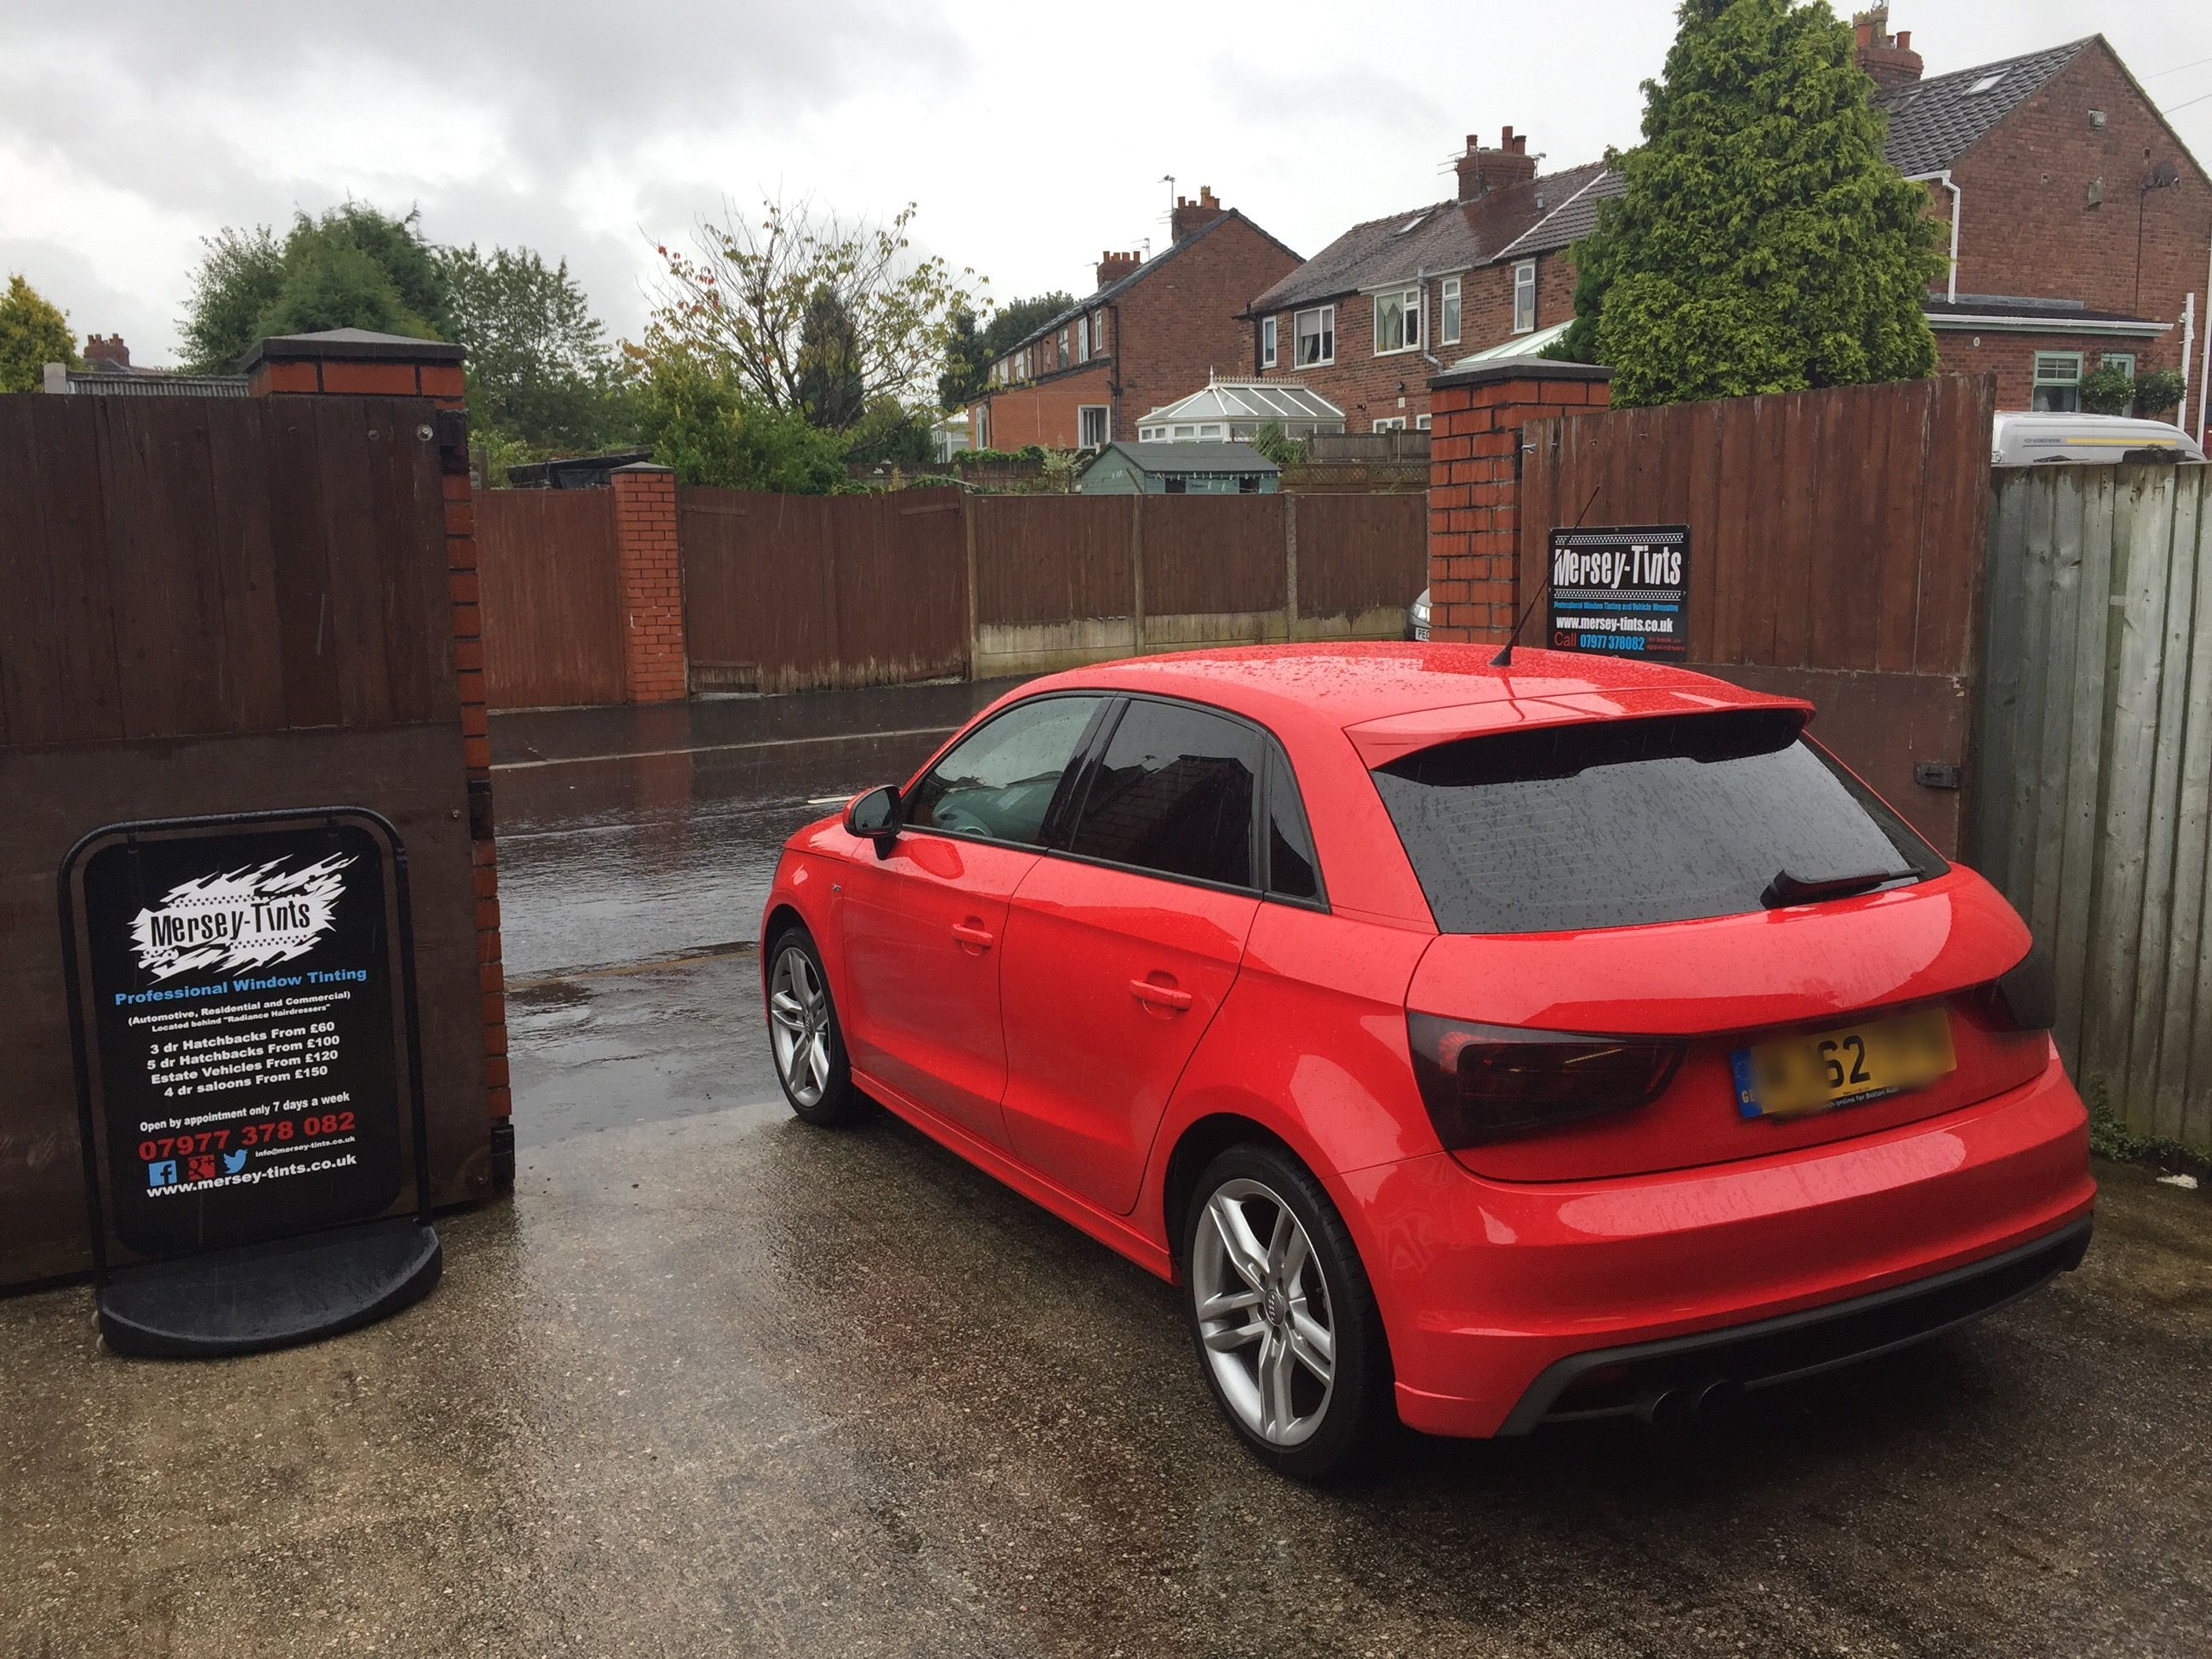 2012 Audi A1 S Line In This Morning For 5 Carbon Limo Tints To